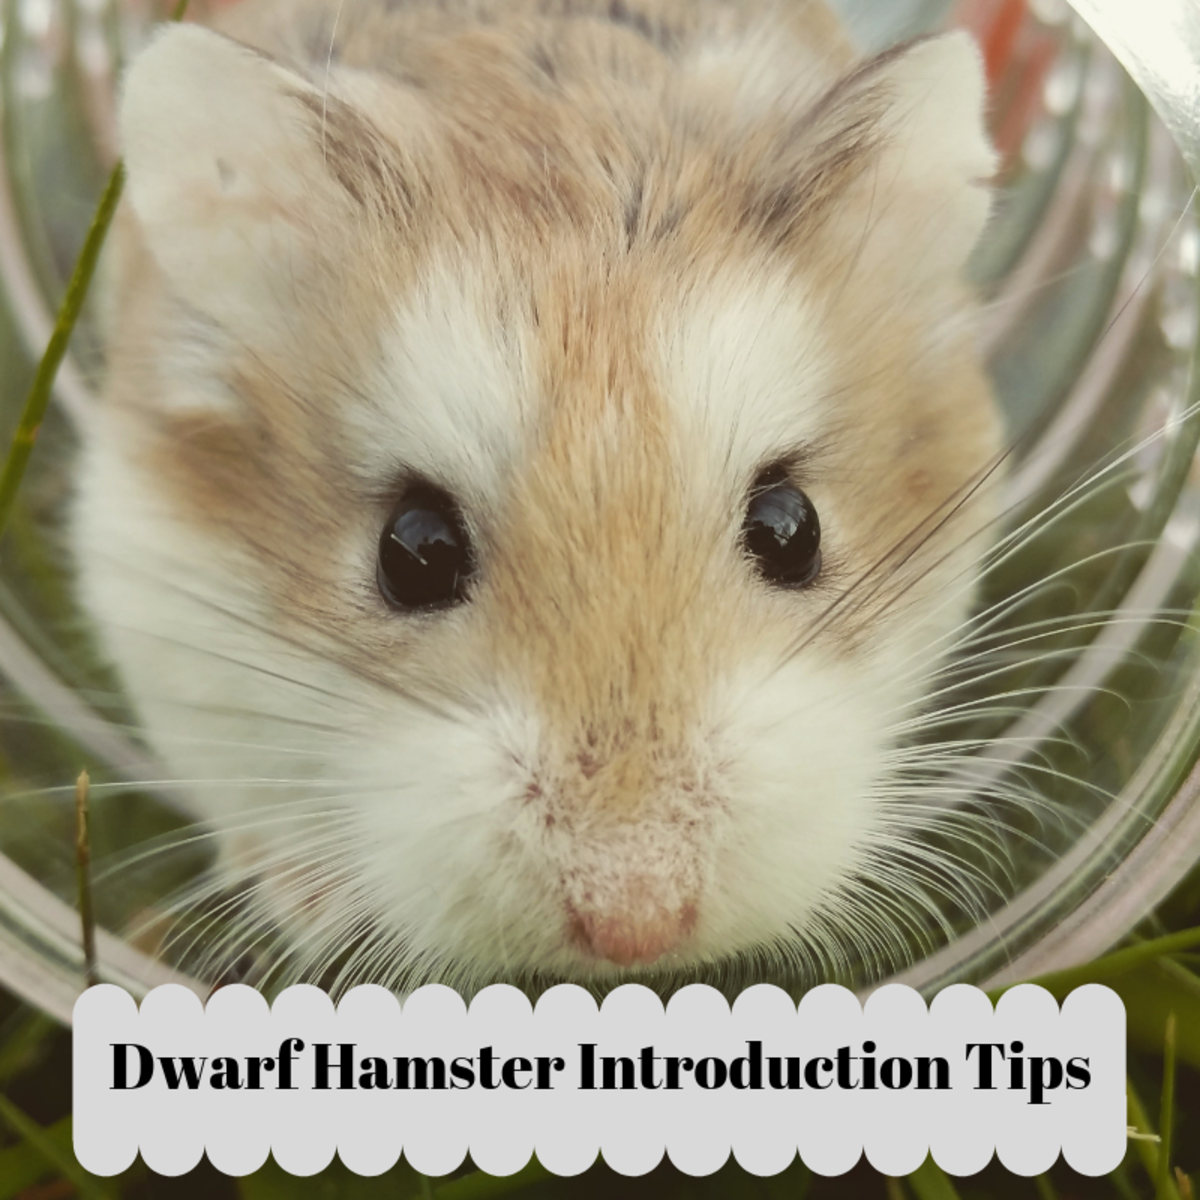 How to Introduce a New Dwarf Hamster into Your Current Hamster's